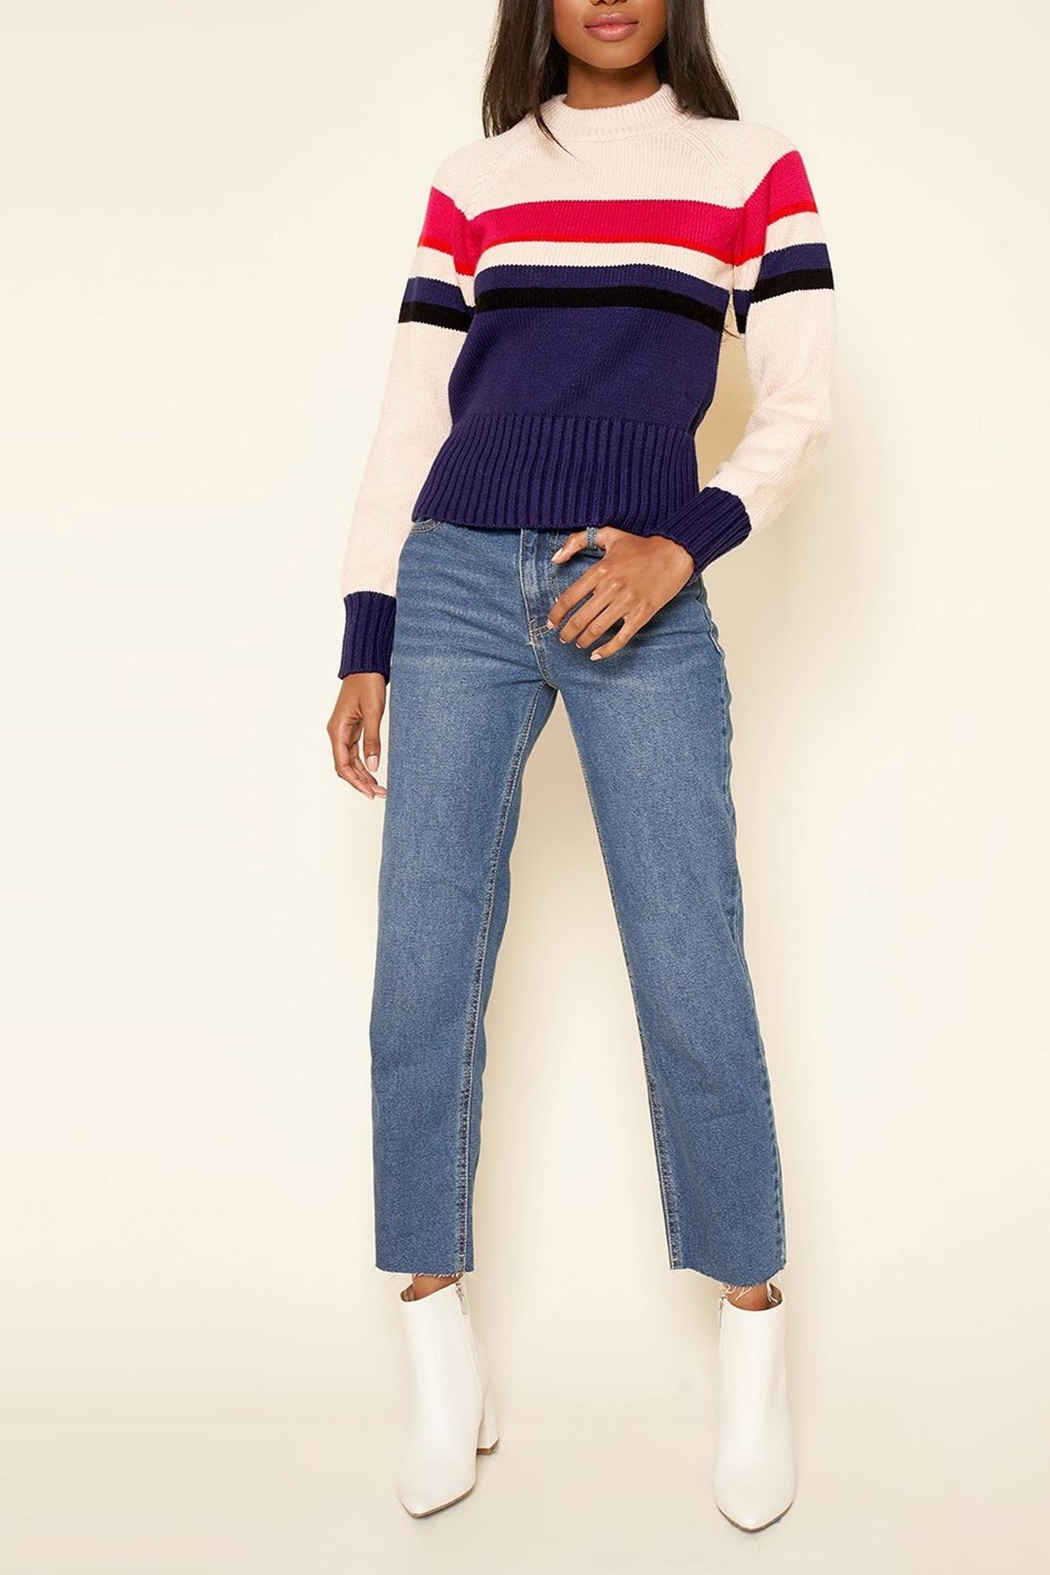 Sugarlips Striped Crew-Neck Sweater - Back Cropped Image